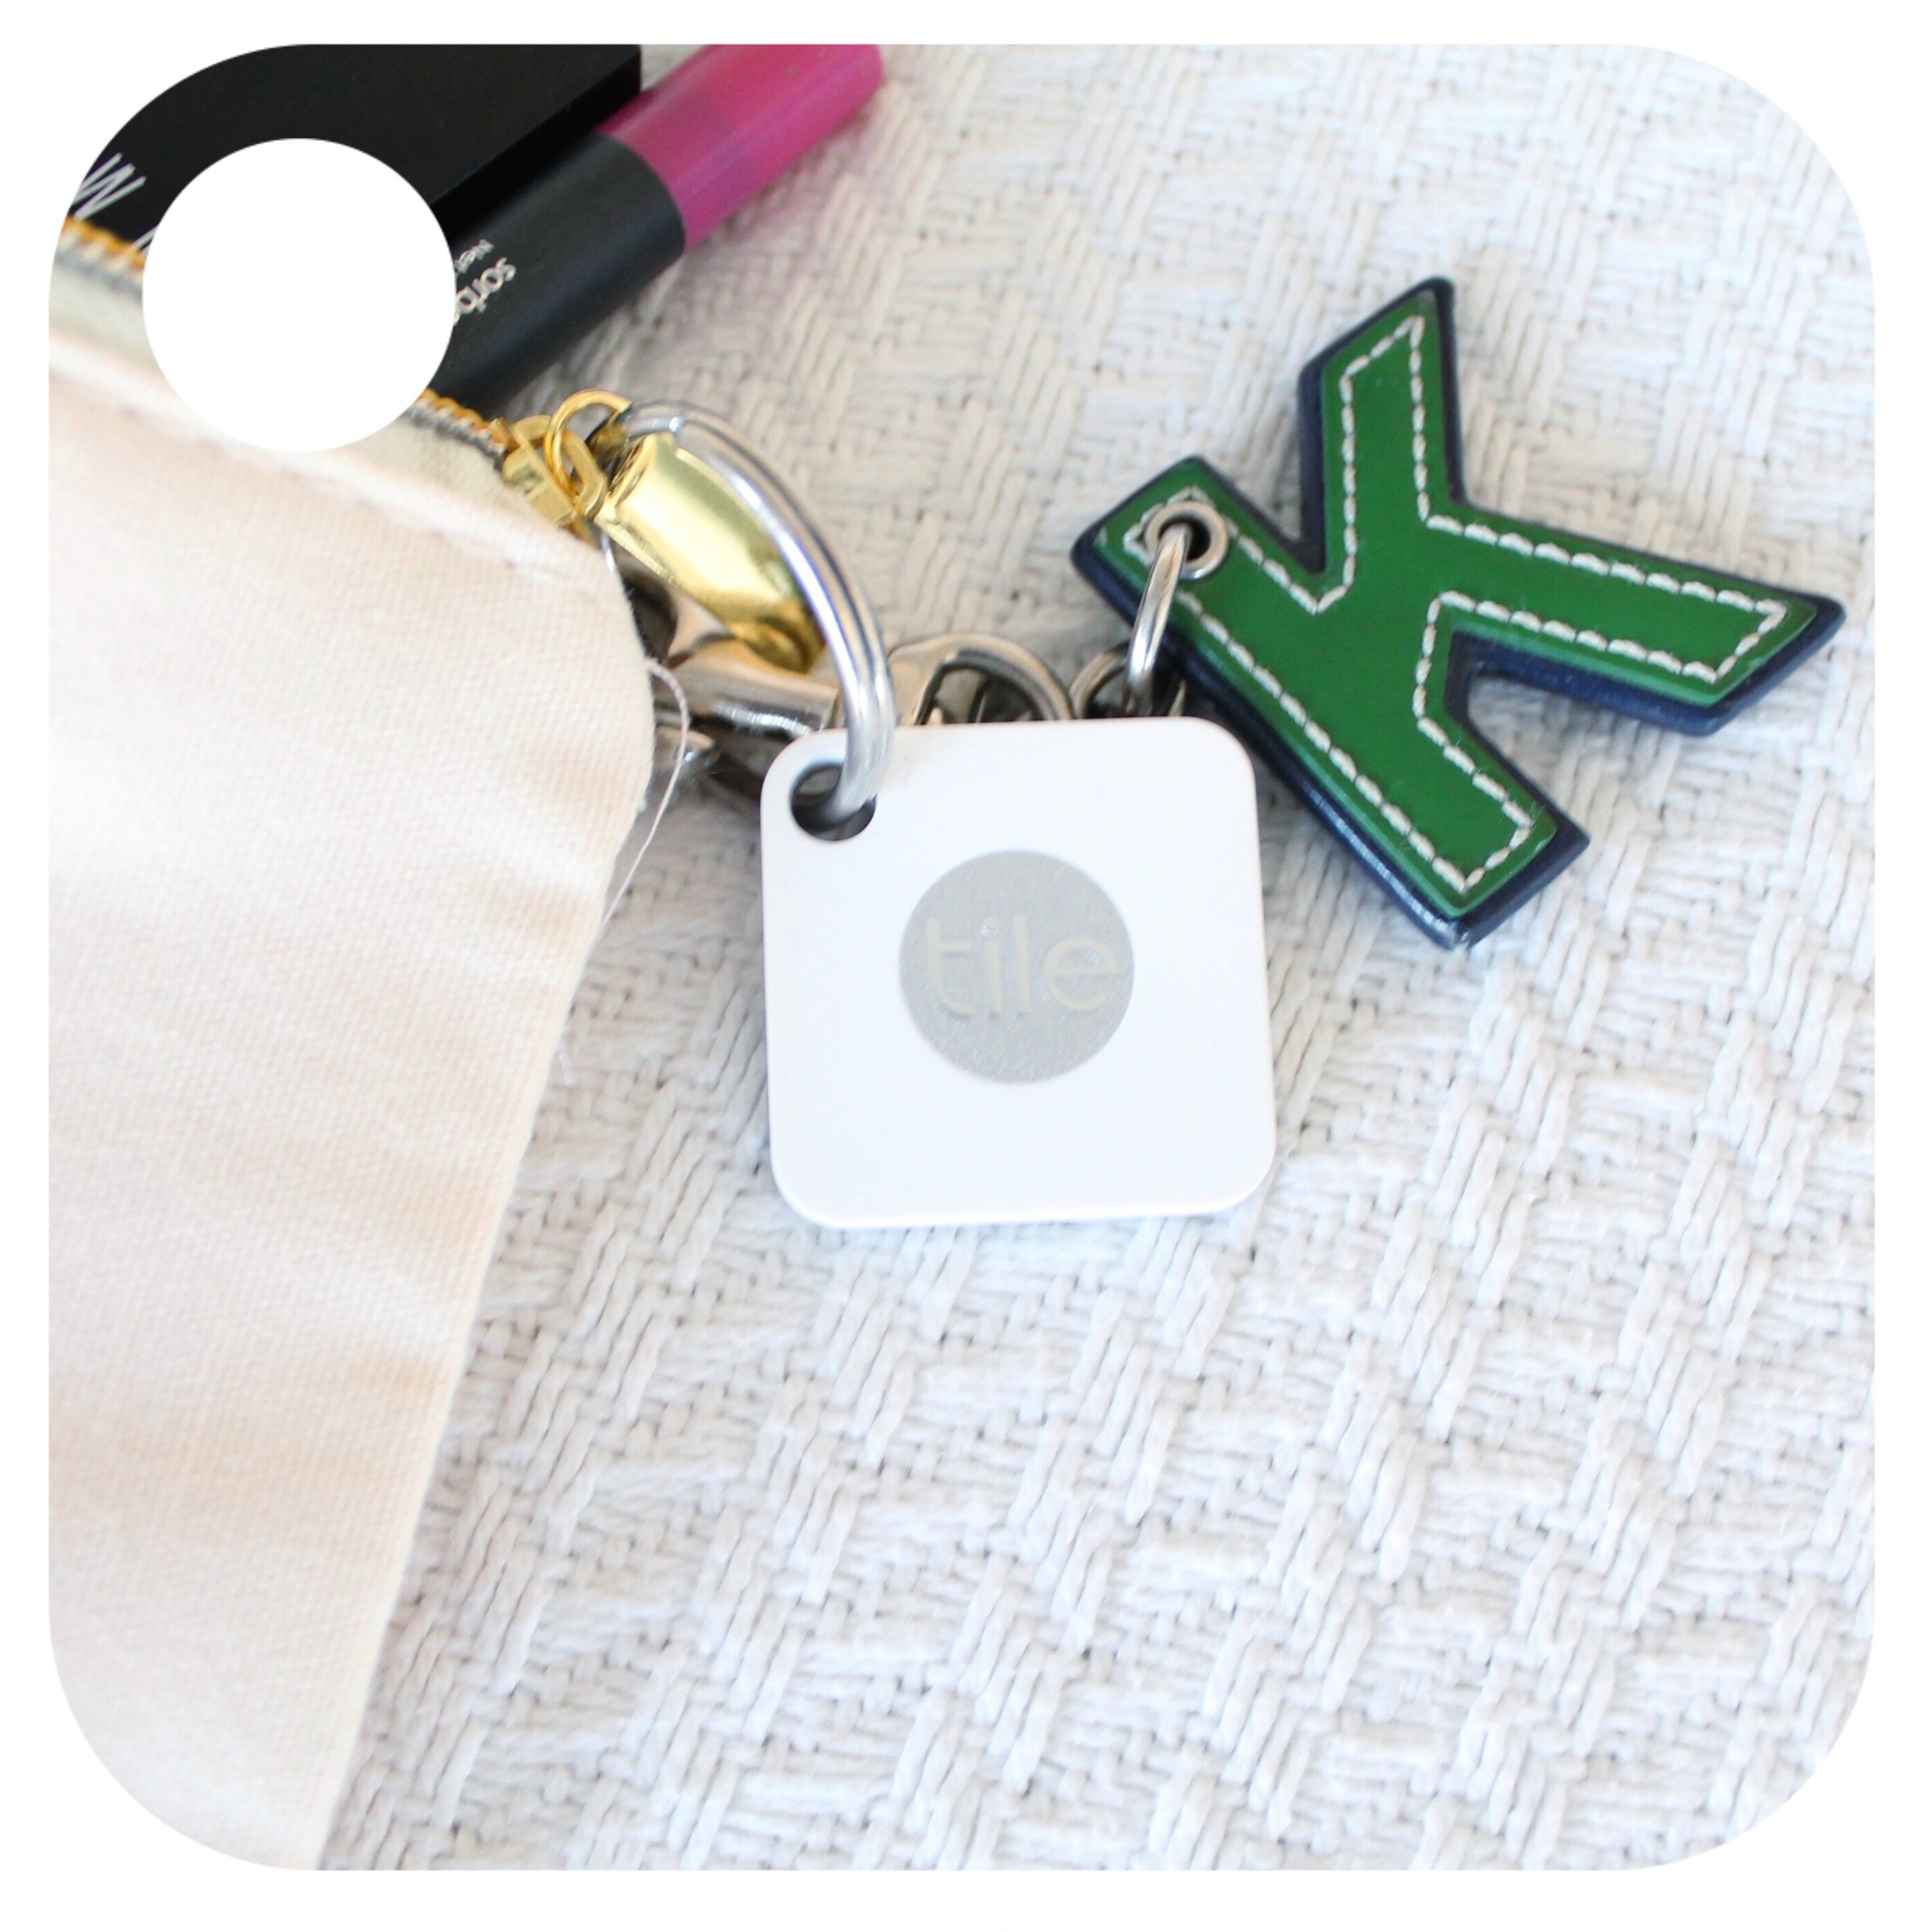 Tile is the world's best-selling little Bluetooth tracker, paired with an intuitive app, making it easy to find everything that matters. #ad #togetherwefind #tileit